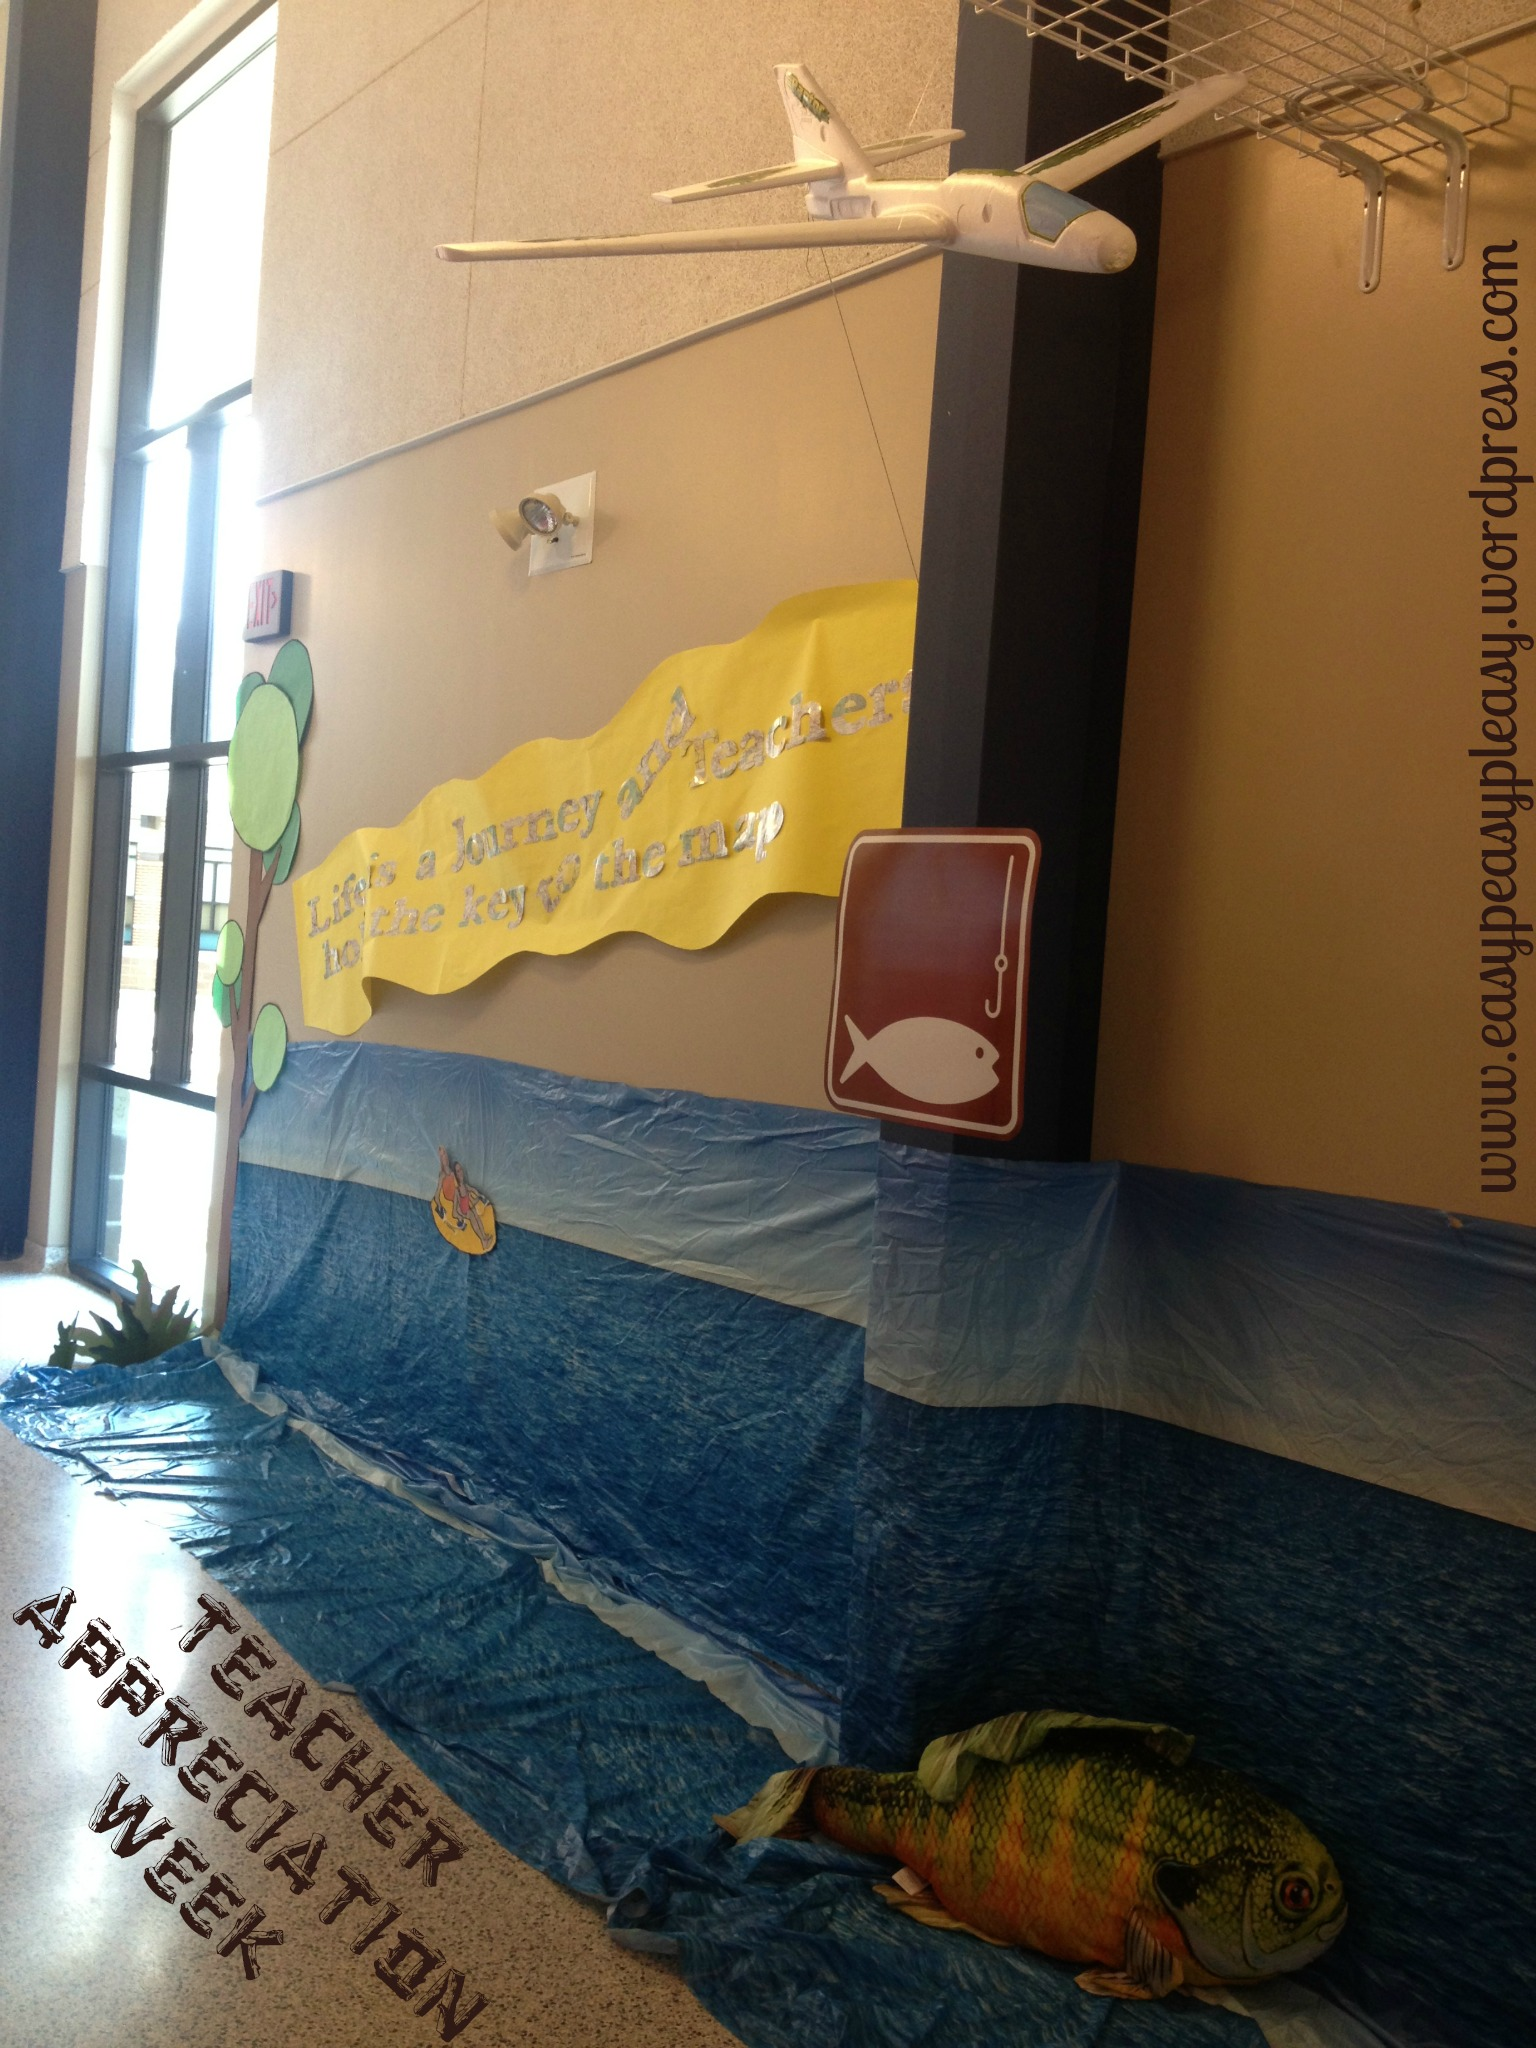 Teacher Appreciation Camping Theme with and airplane pulling a banner